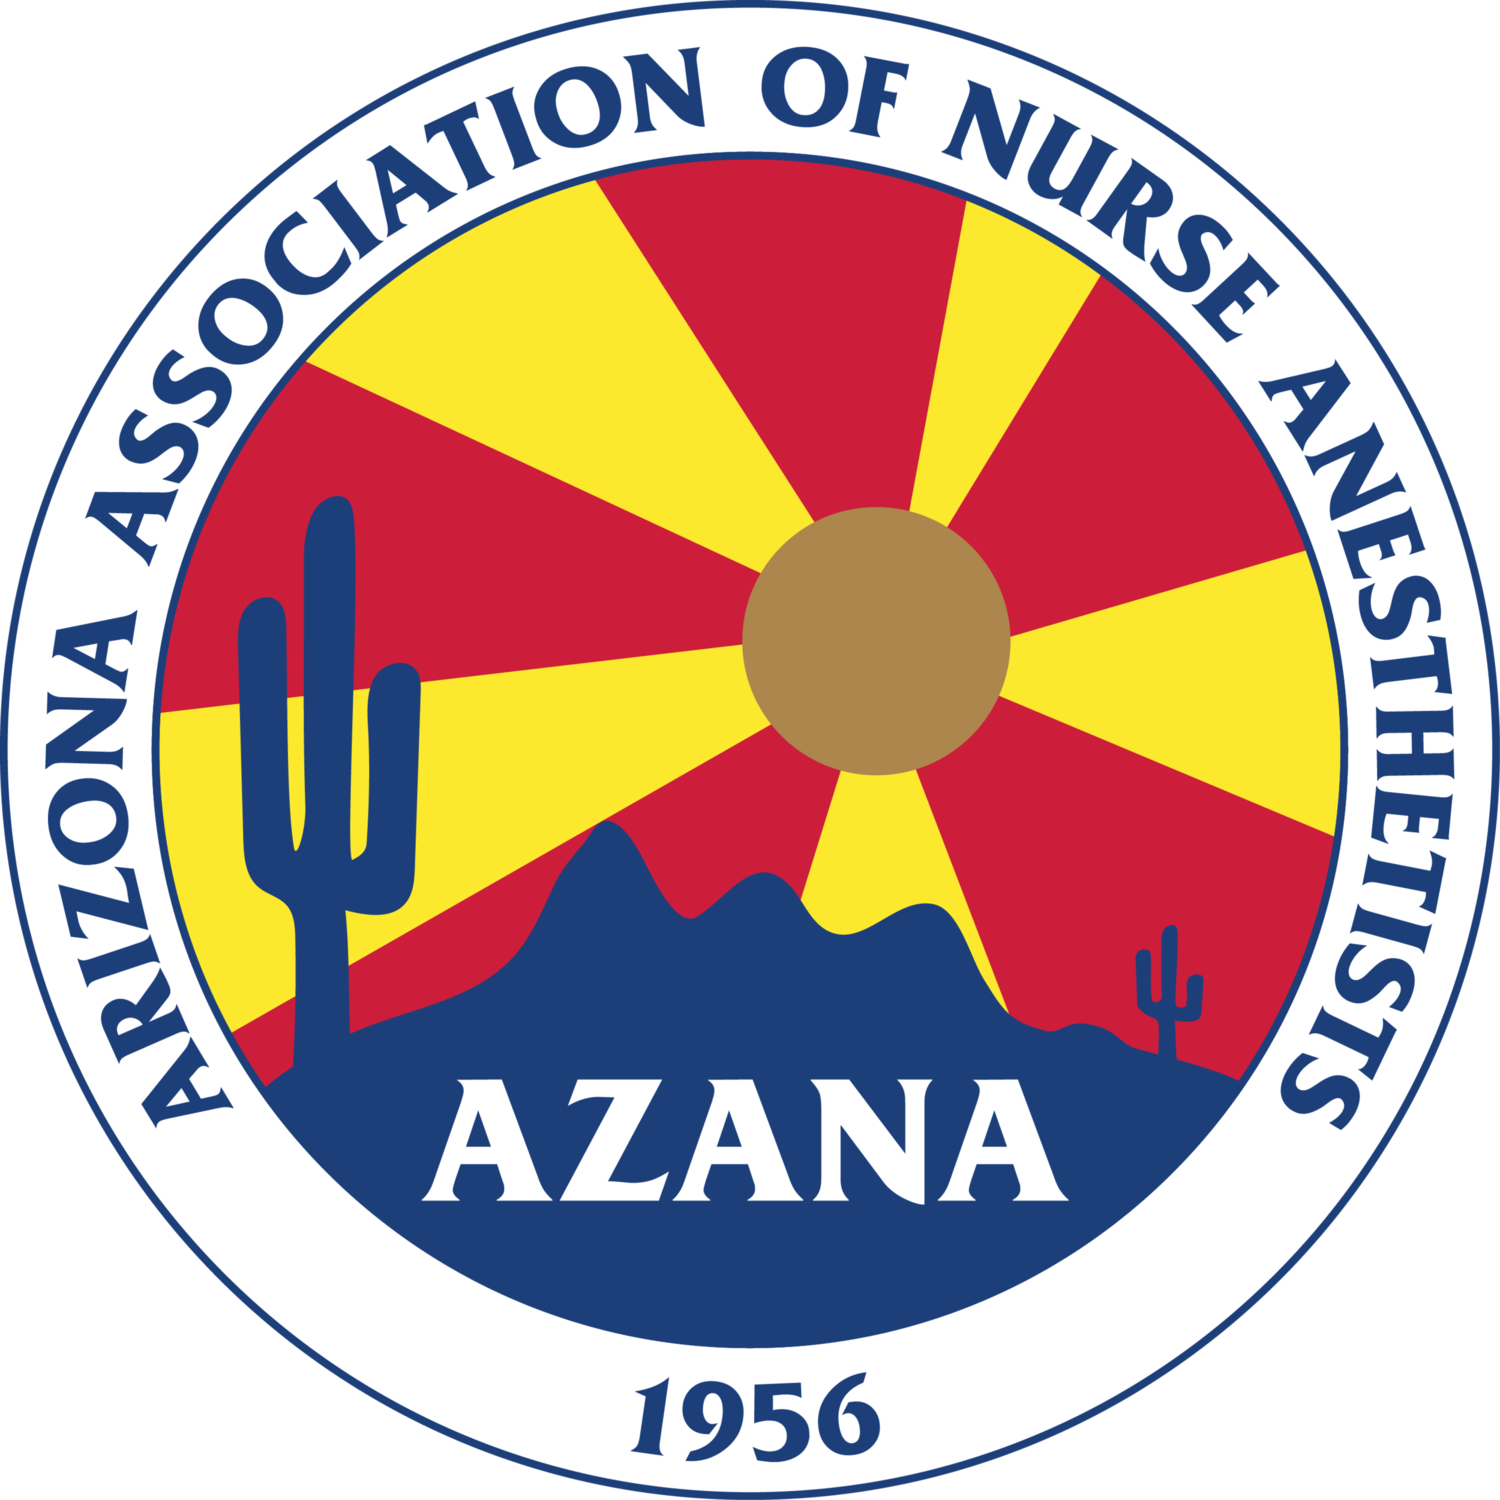 The Arizona Association of Nurse Anesthetists